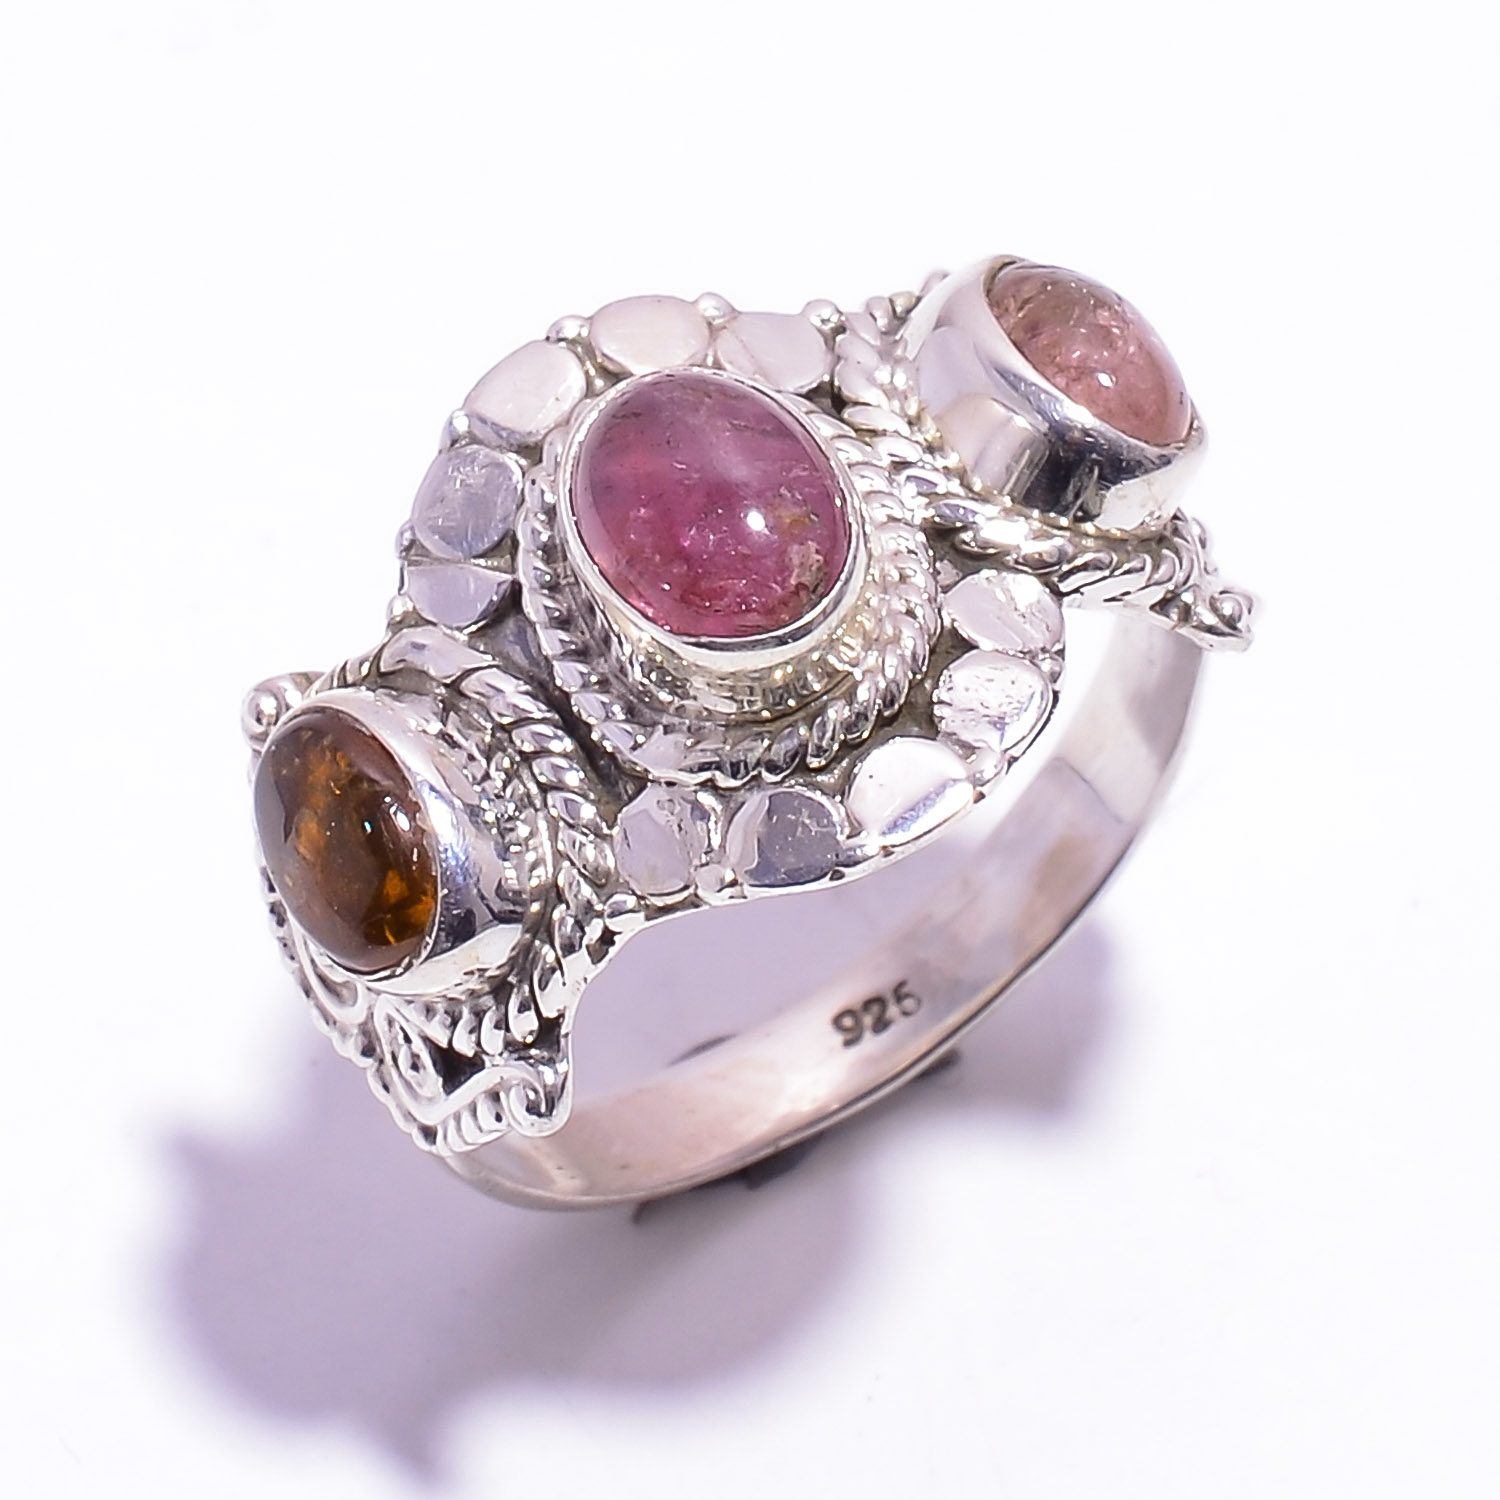 Tourmaline Gemstone 925 Sterling Silver Ring Size US 9